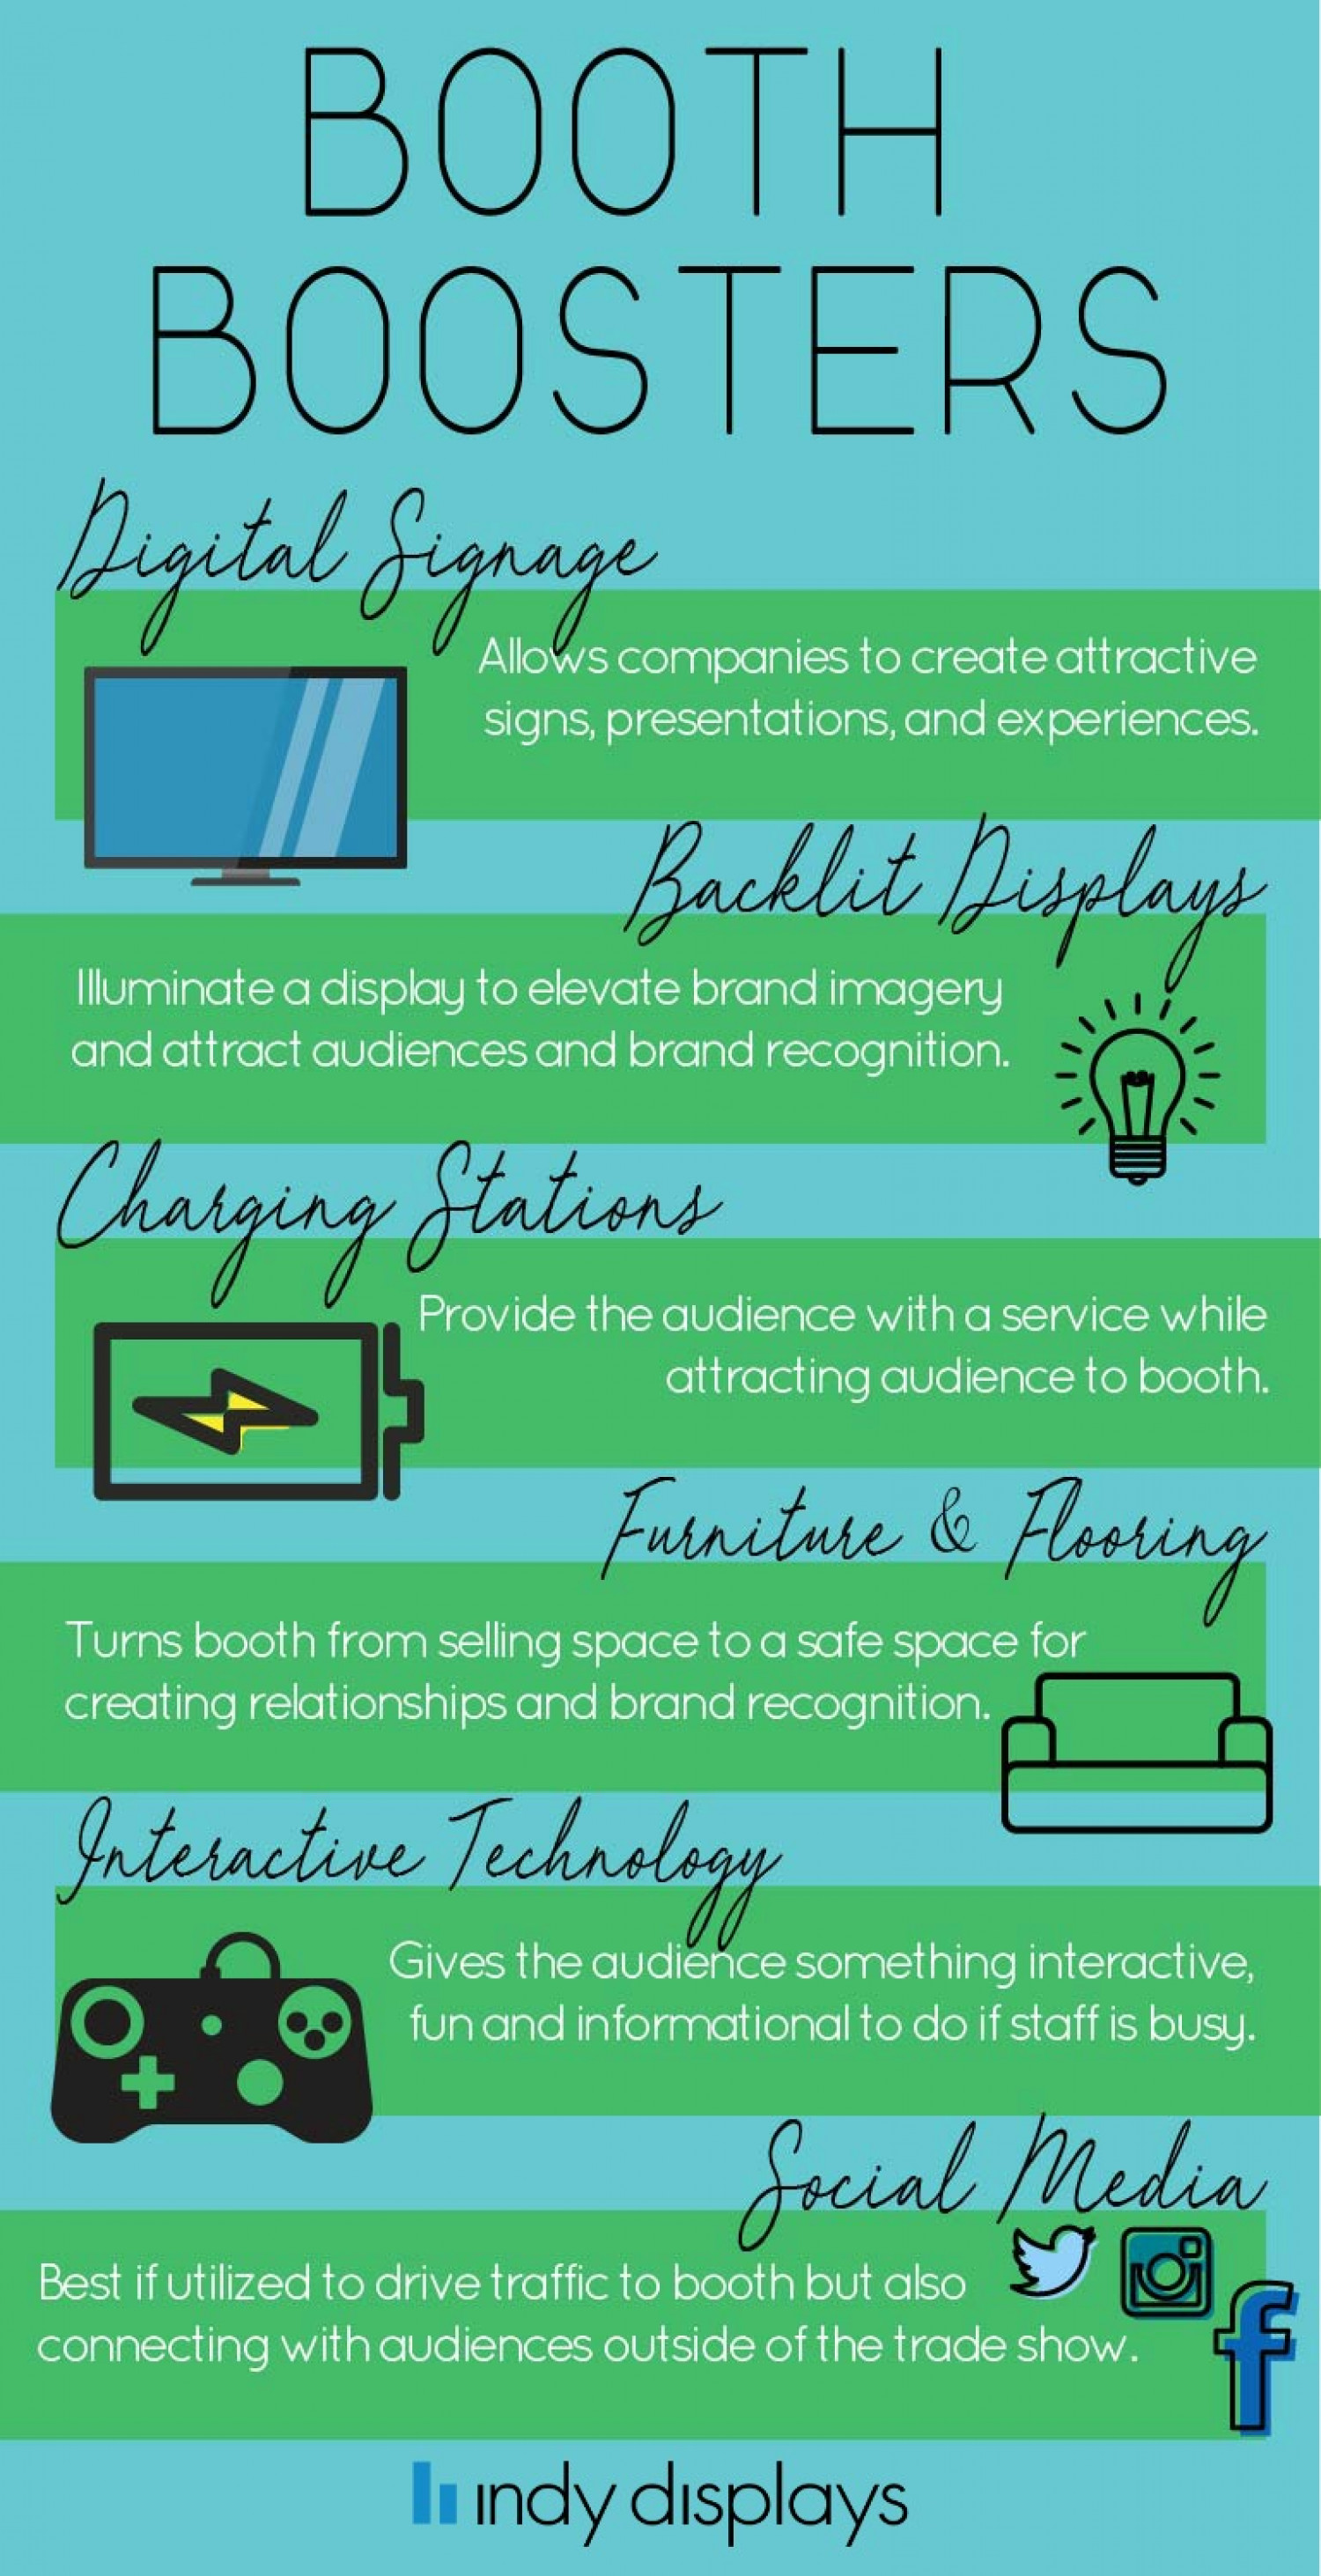 2018 Exhibition Booth Design Branding Boosters Infographic